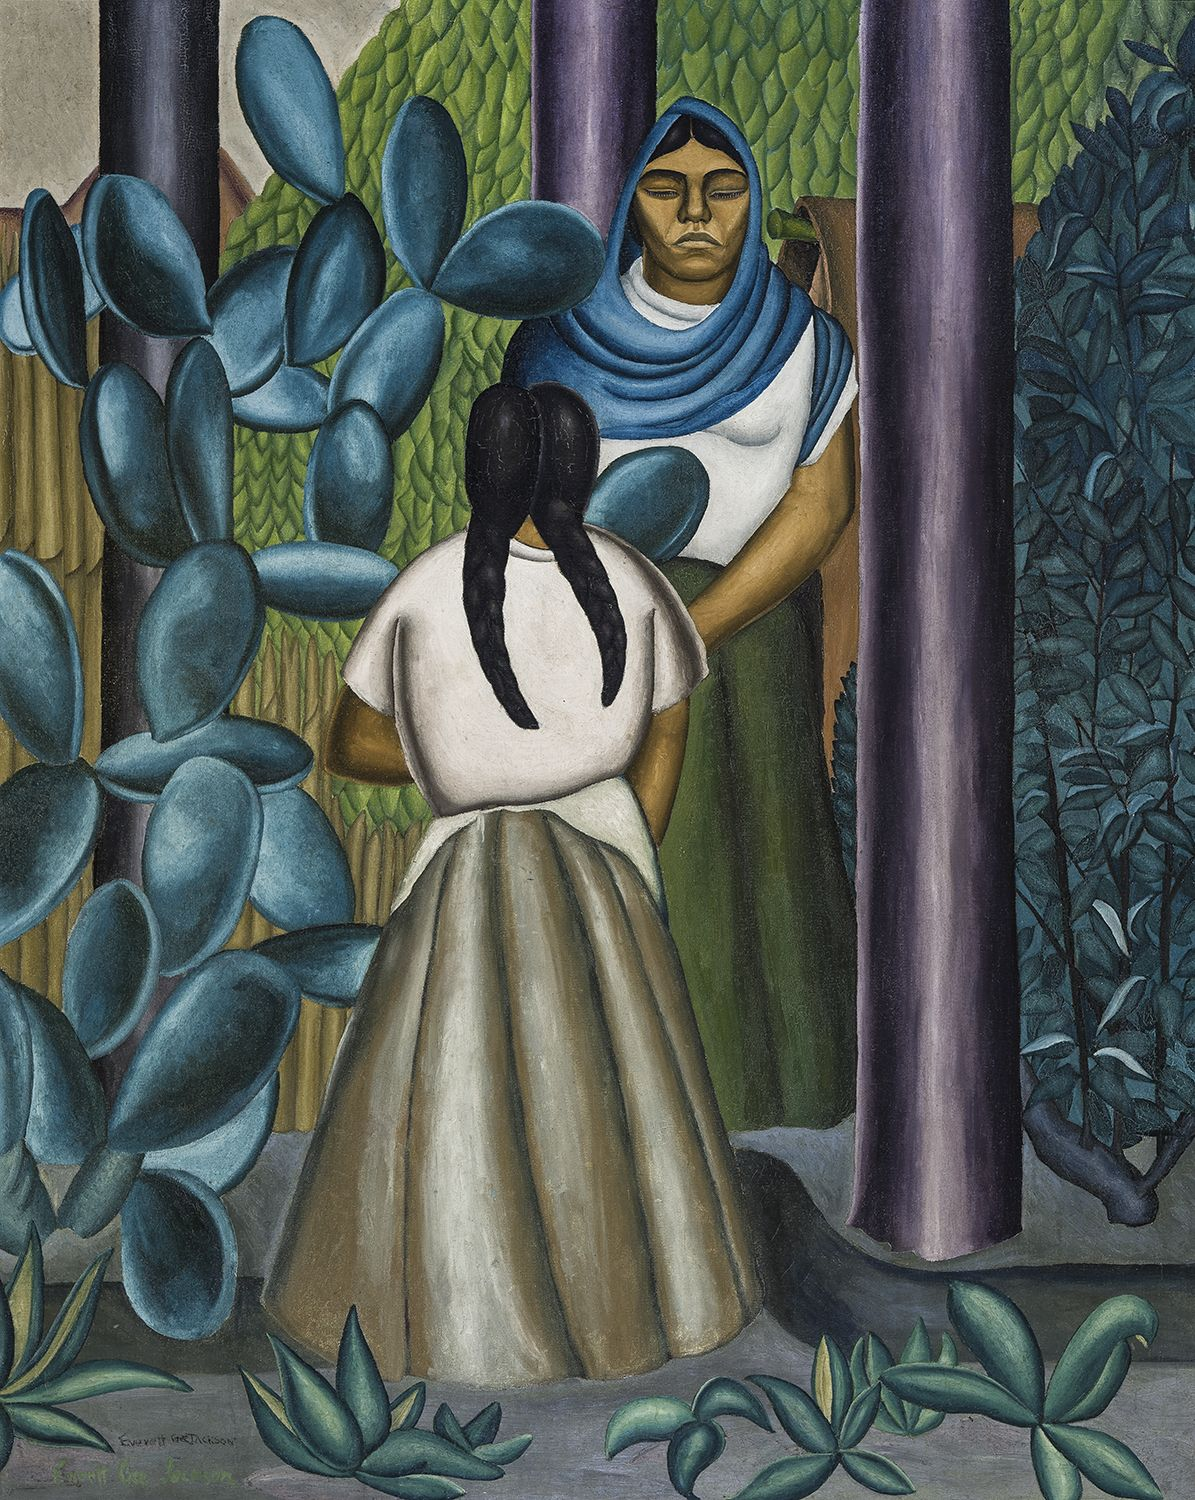 Women with Cactus, c. 1928, Oil on canvas, 45 x 36 in.